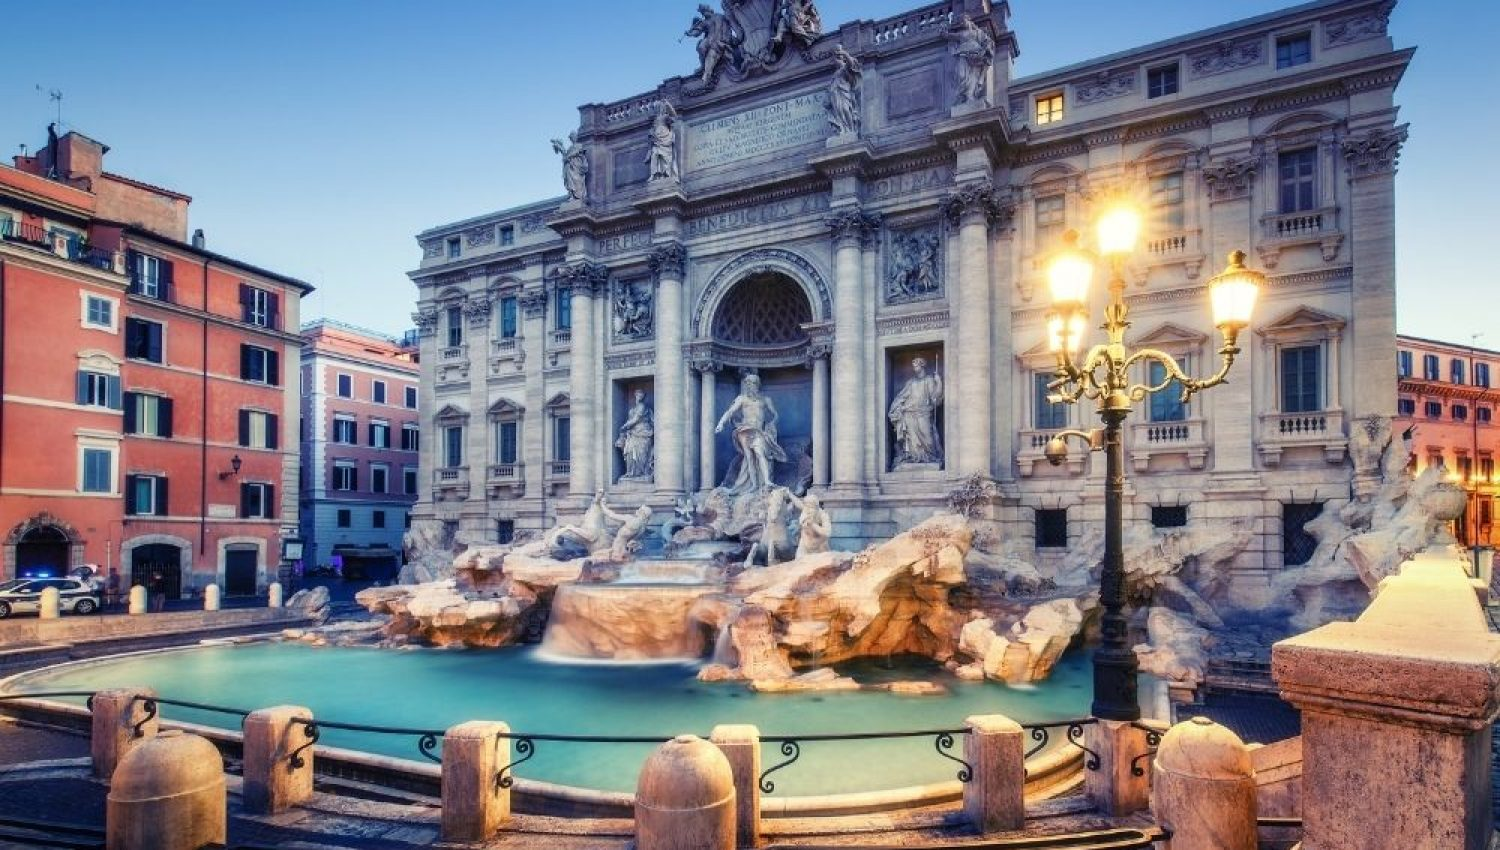 Backpacker's Guide to Rome